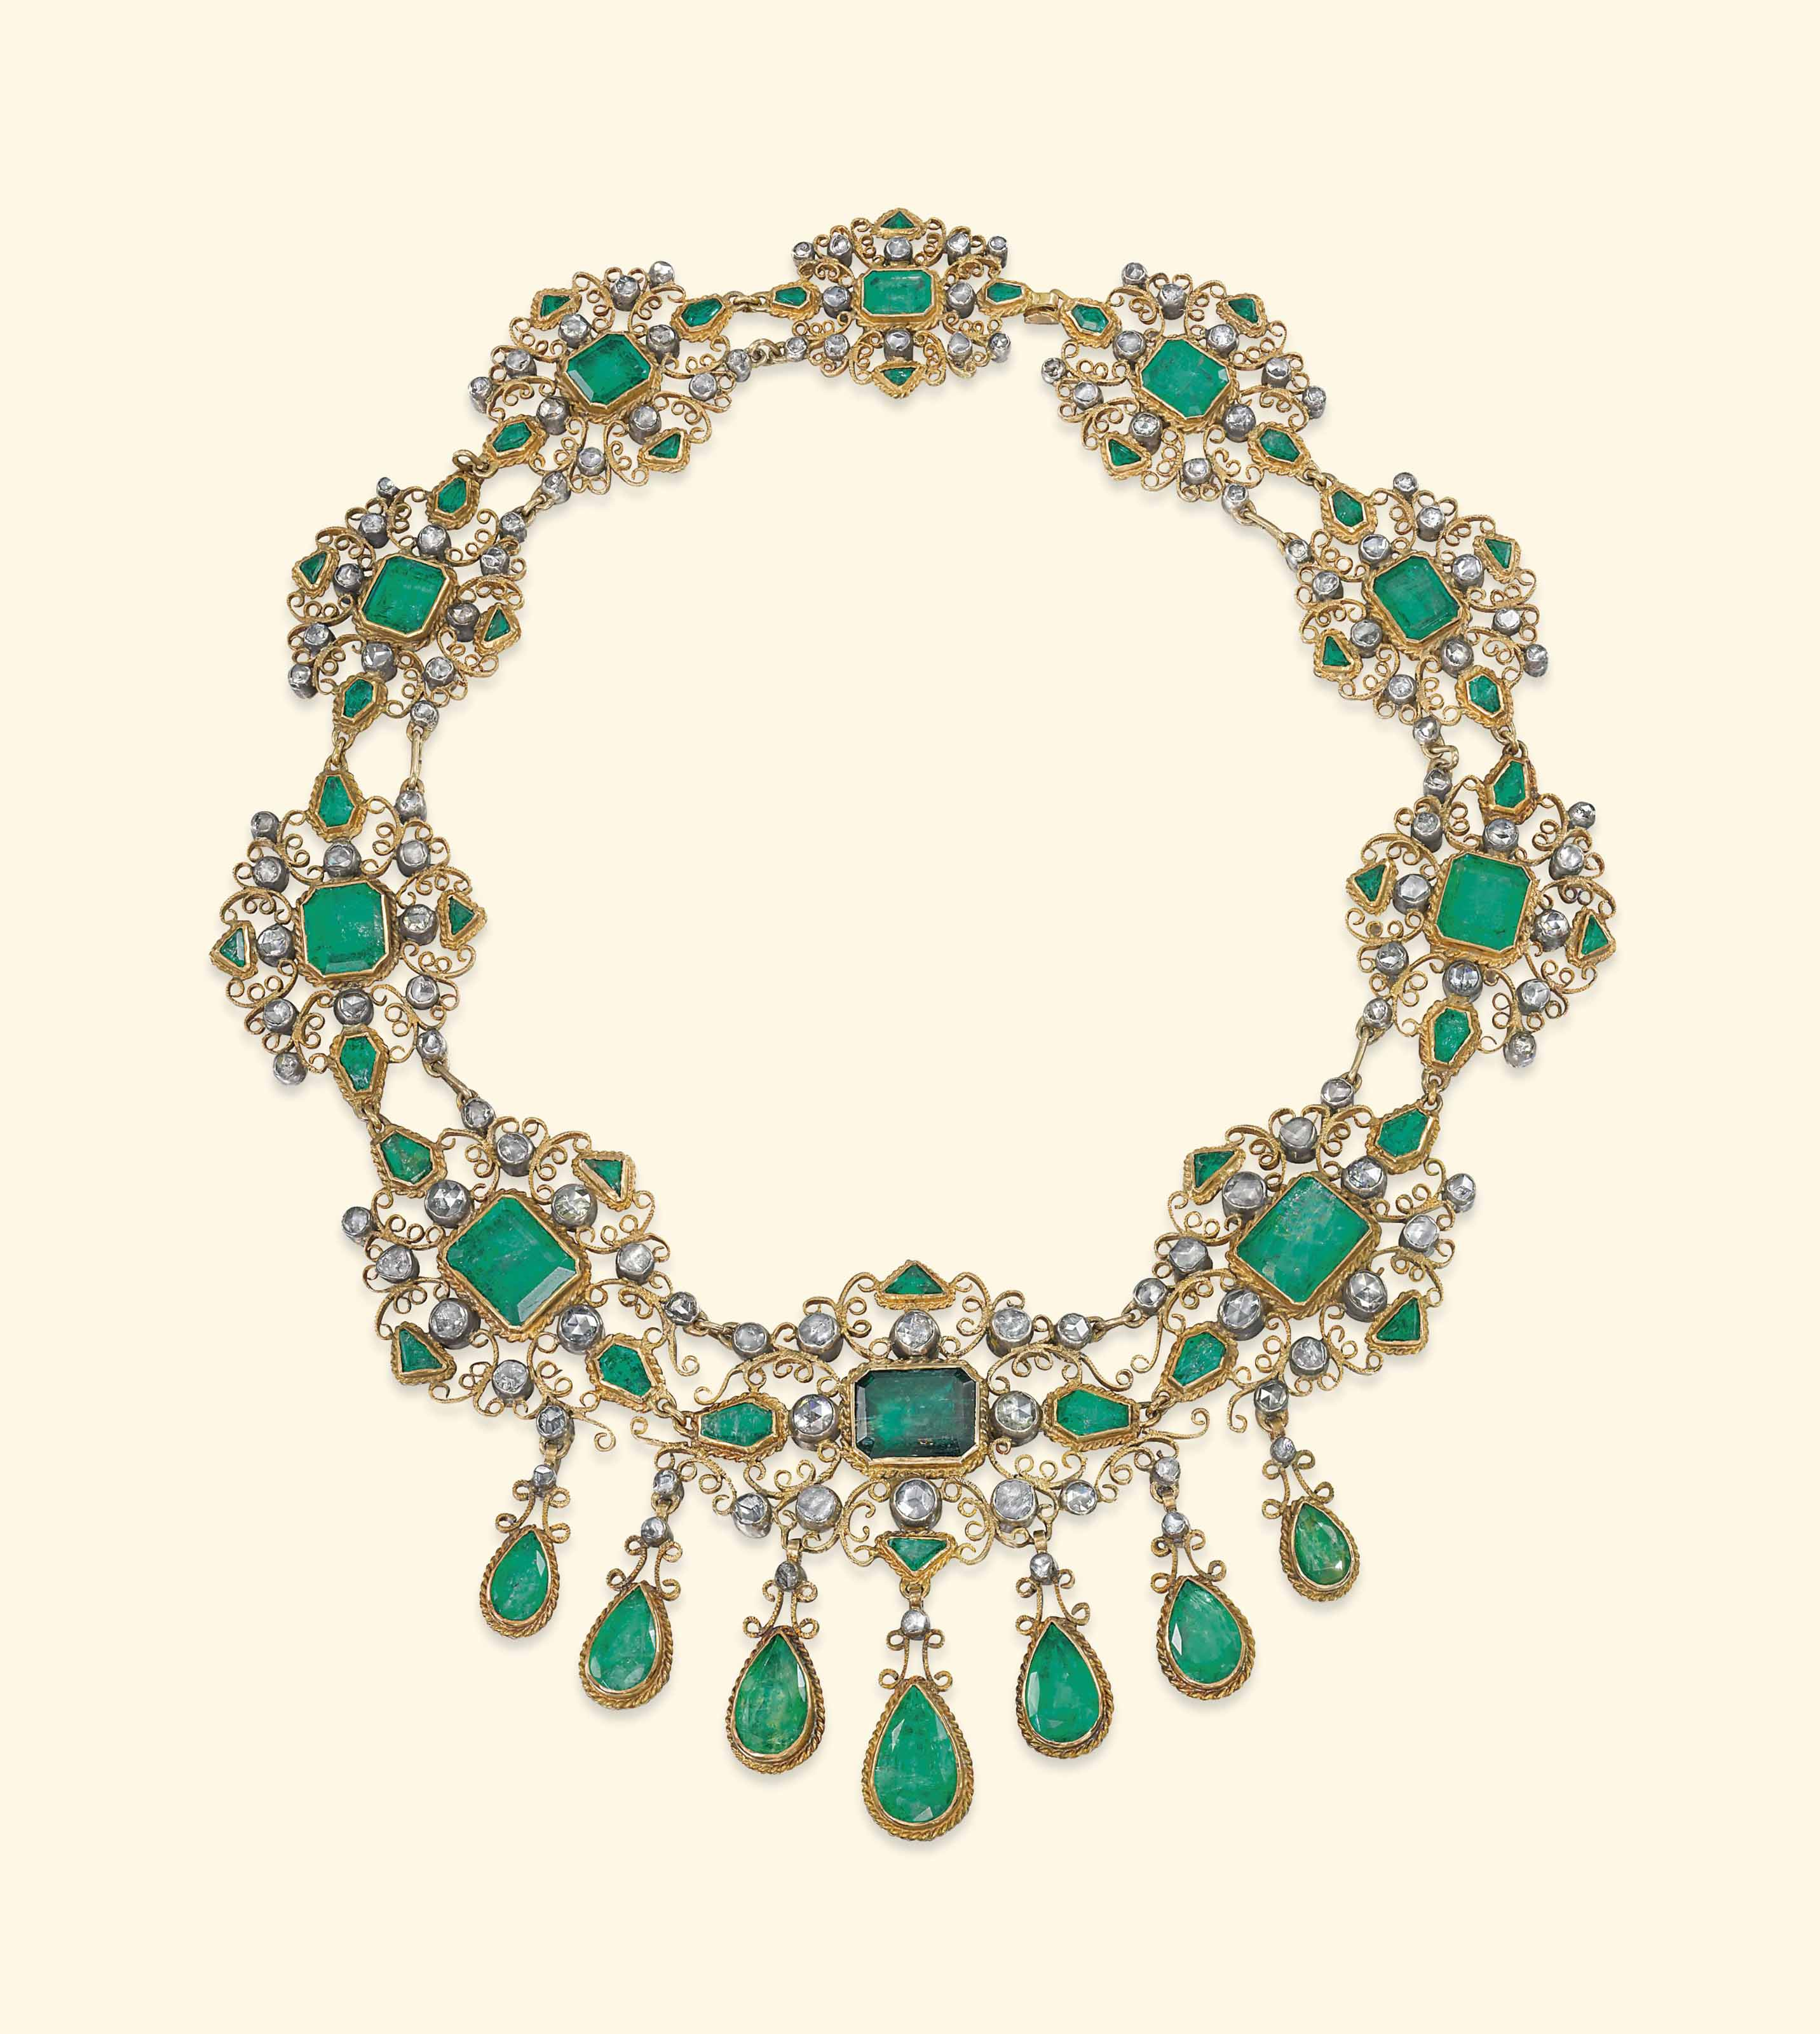 AN ANTIQUE IBERIAN EMERALD AND